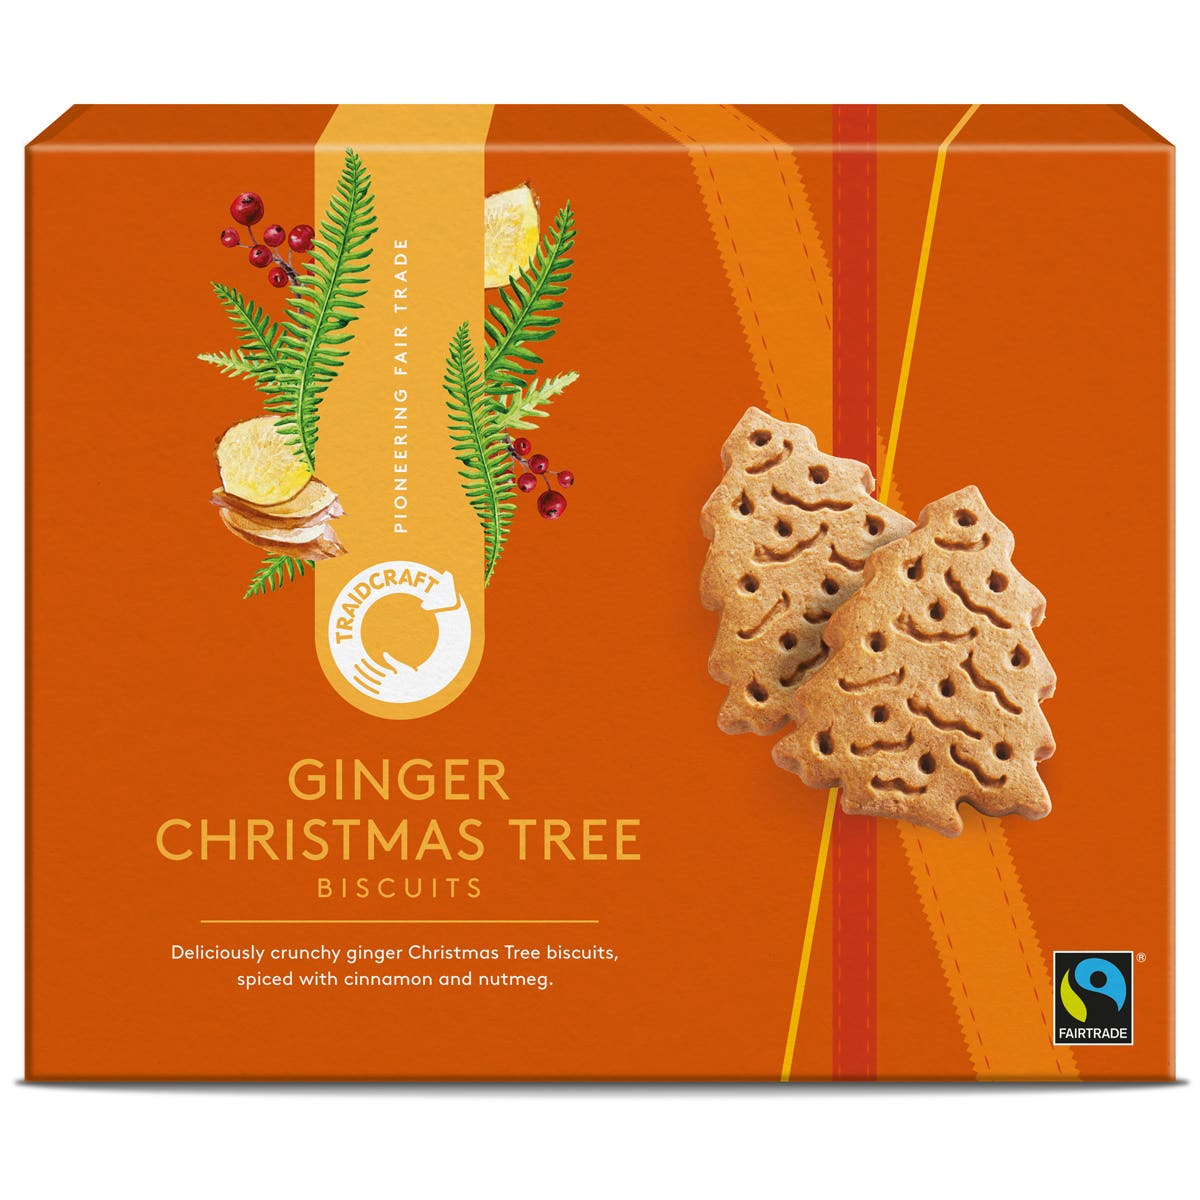 Traidcraft Ginger Christmas Tree Biscuits (170g)